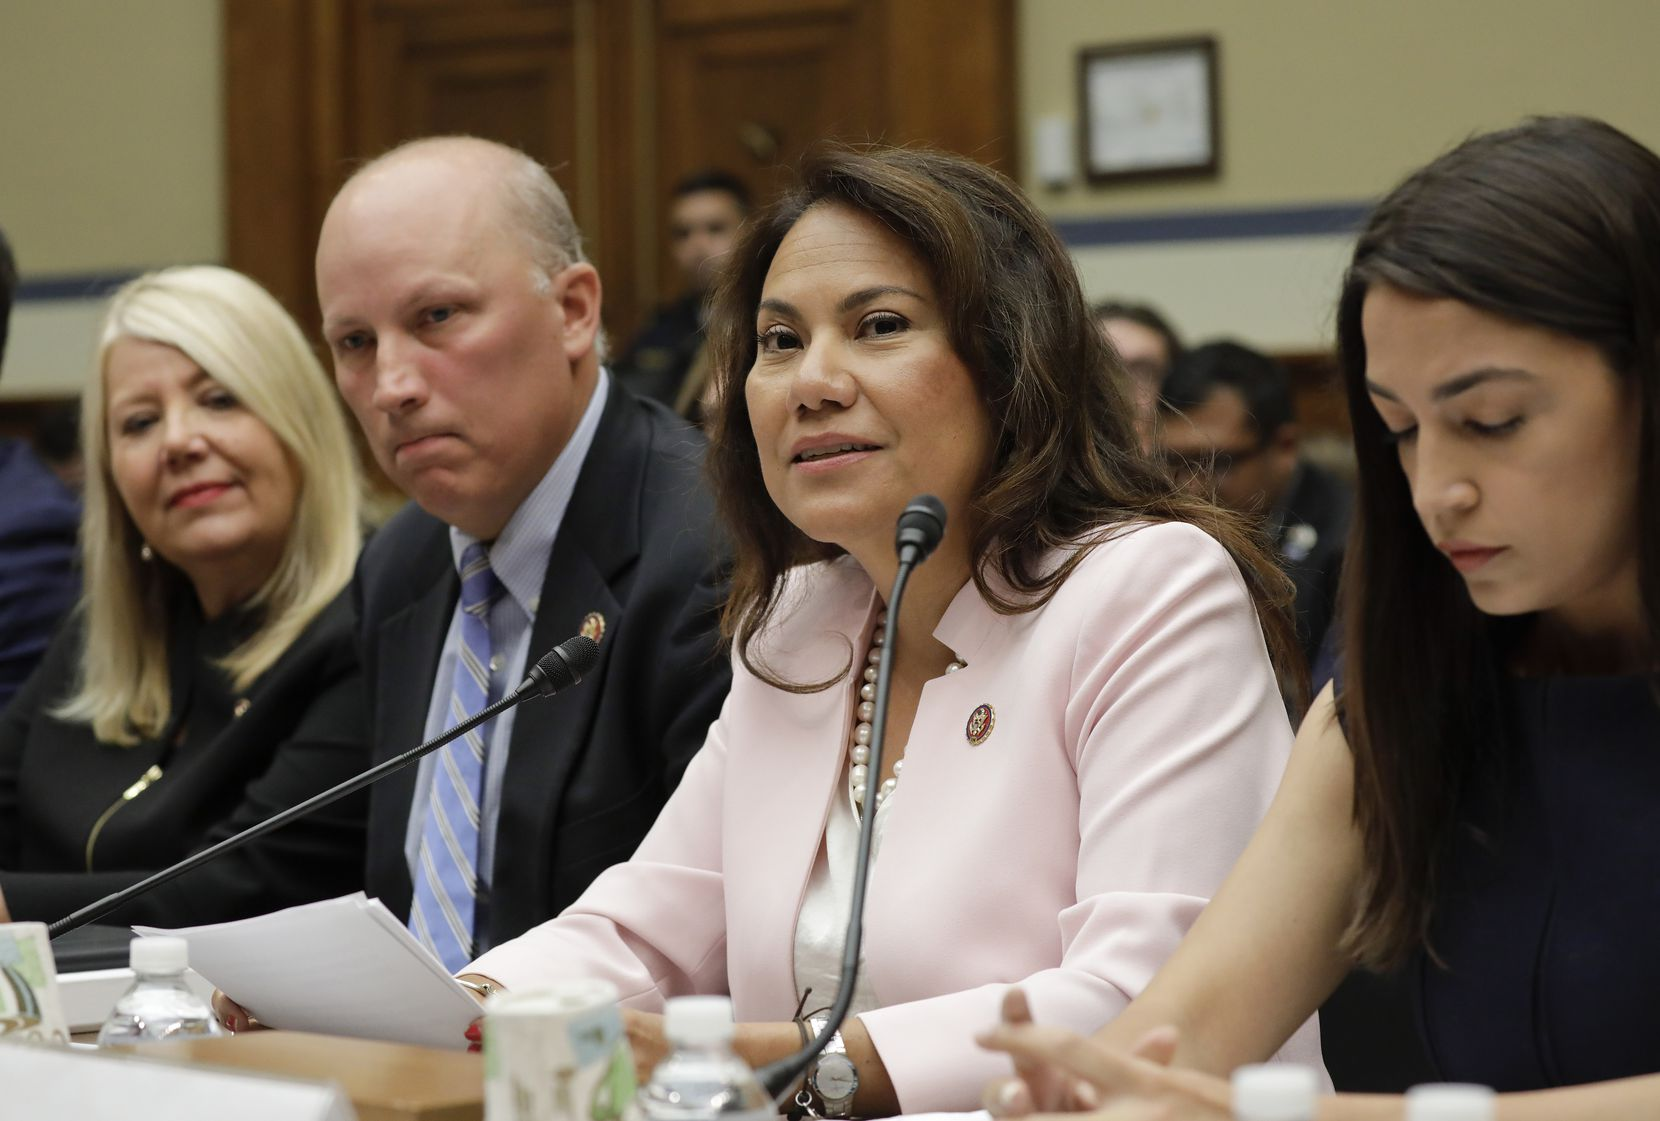 Rep. Veronica Escobar, D-Texas, second from the right, testifies before the House Oversight Committee hearing on family separation and detention centers, Friday, July 12, 2019 on Capitol Hill in Washington. Also on the panel are from l-r., Rep. Debbie Lesko, R-Ariz., Rep. Chip Roy, R-Texas and Rep. Alexandria Ocasio-Cortez, D-N.Y. (AP Photo/Pablo Martinez Monsivais)